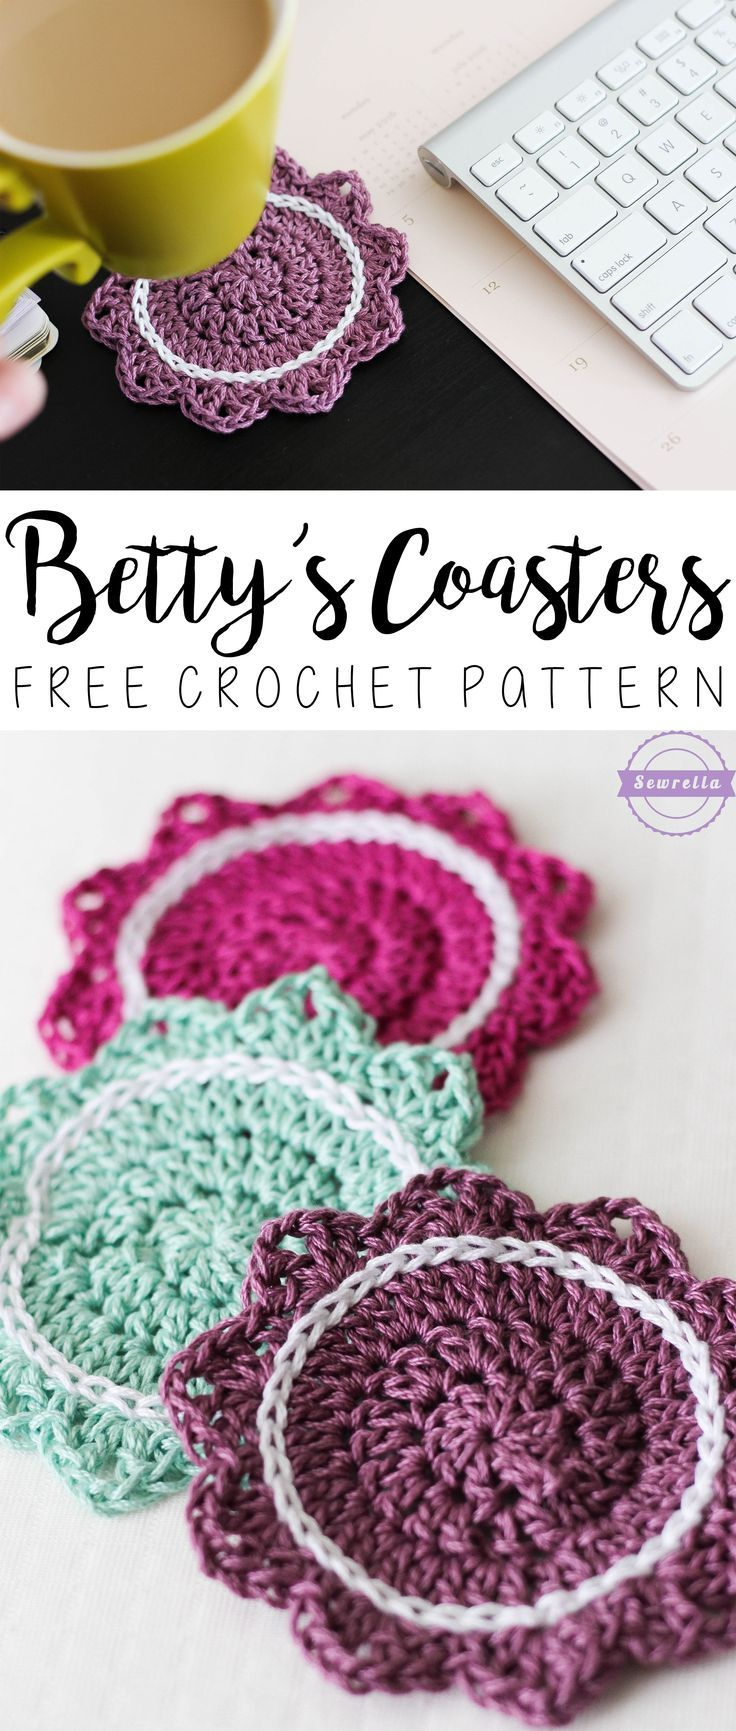 Bettys coasters summer kitchen free crochet and crochet bettys coasters summer kitchencrochet grannyfree crochetcrochet pattern chrochetcrochet bankloansurffo Images